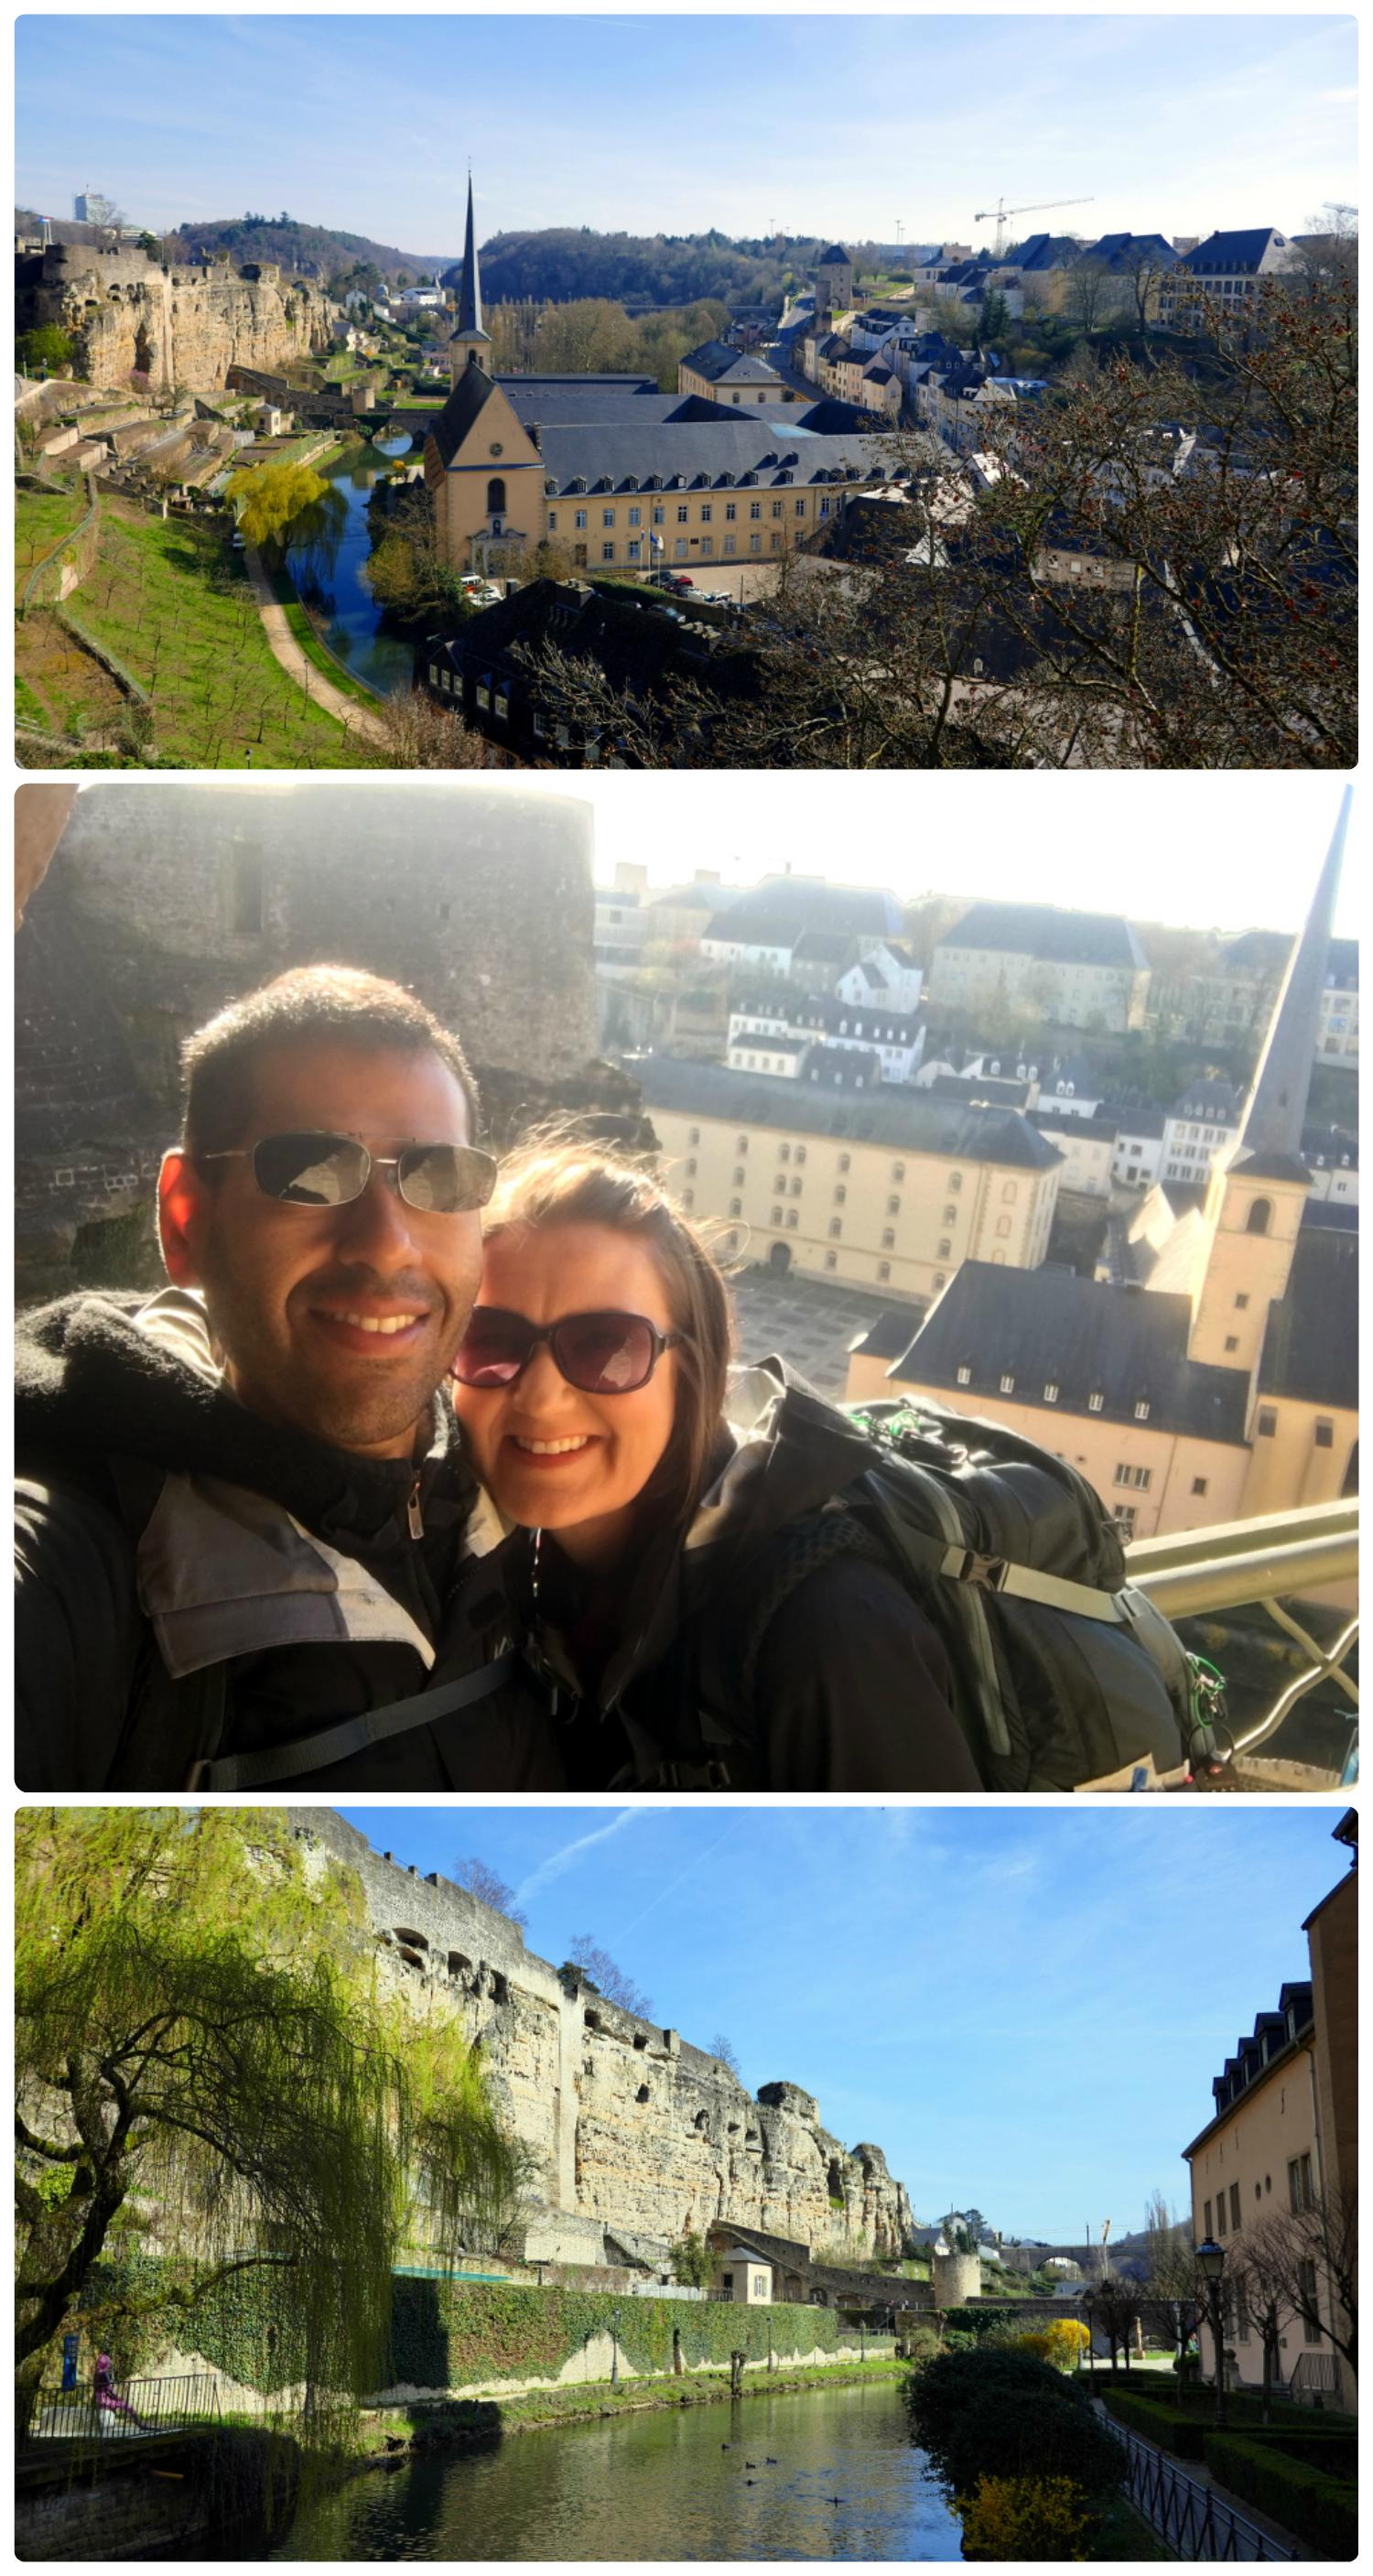 Luxembourg City, Luxembourg. Clockwise (from the top left): Top to bottom: View from 'Europe's most beautiful balcony', us walking the path along the city walls towards the Alzette River, view from the 'old city' - on the left of the Alzette River is the Melusina Mermaid sculpture and straight ahead is the Stierchen Bridge.